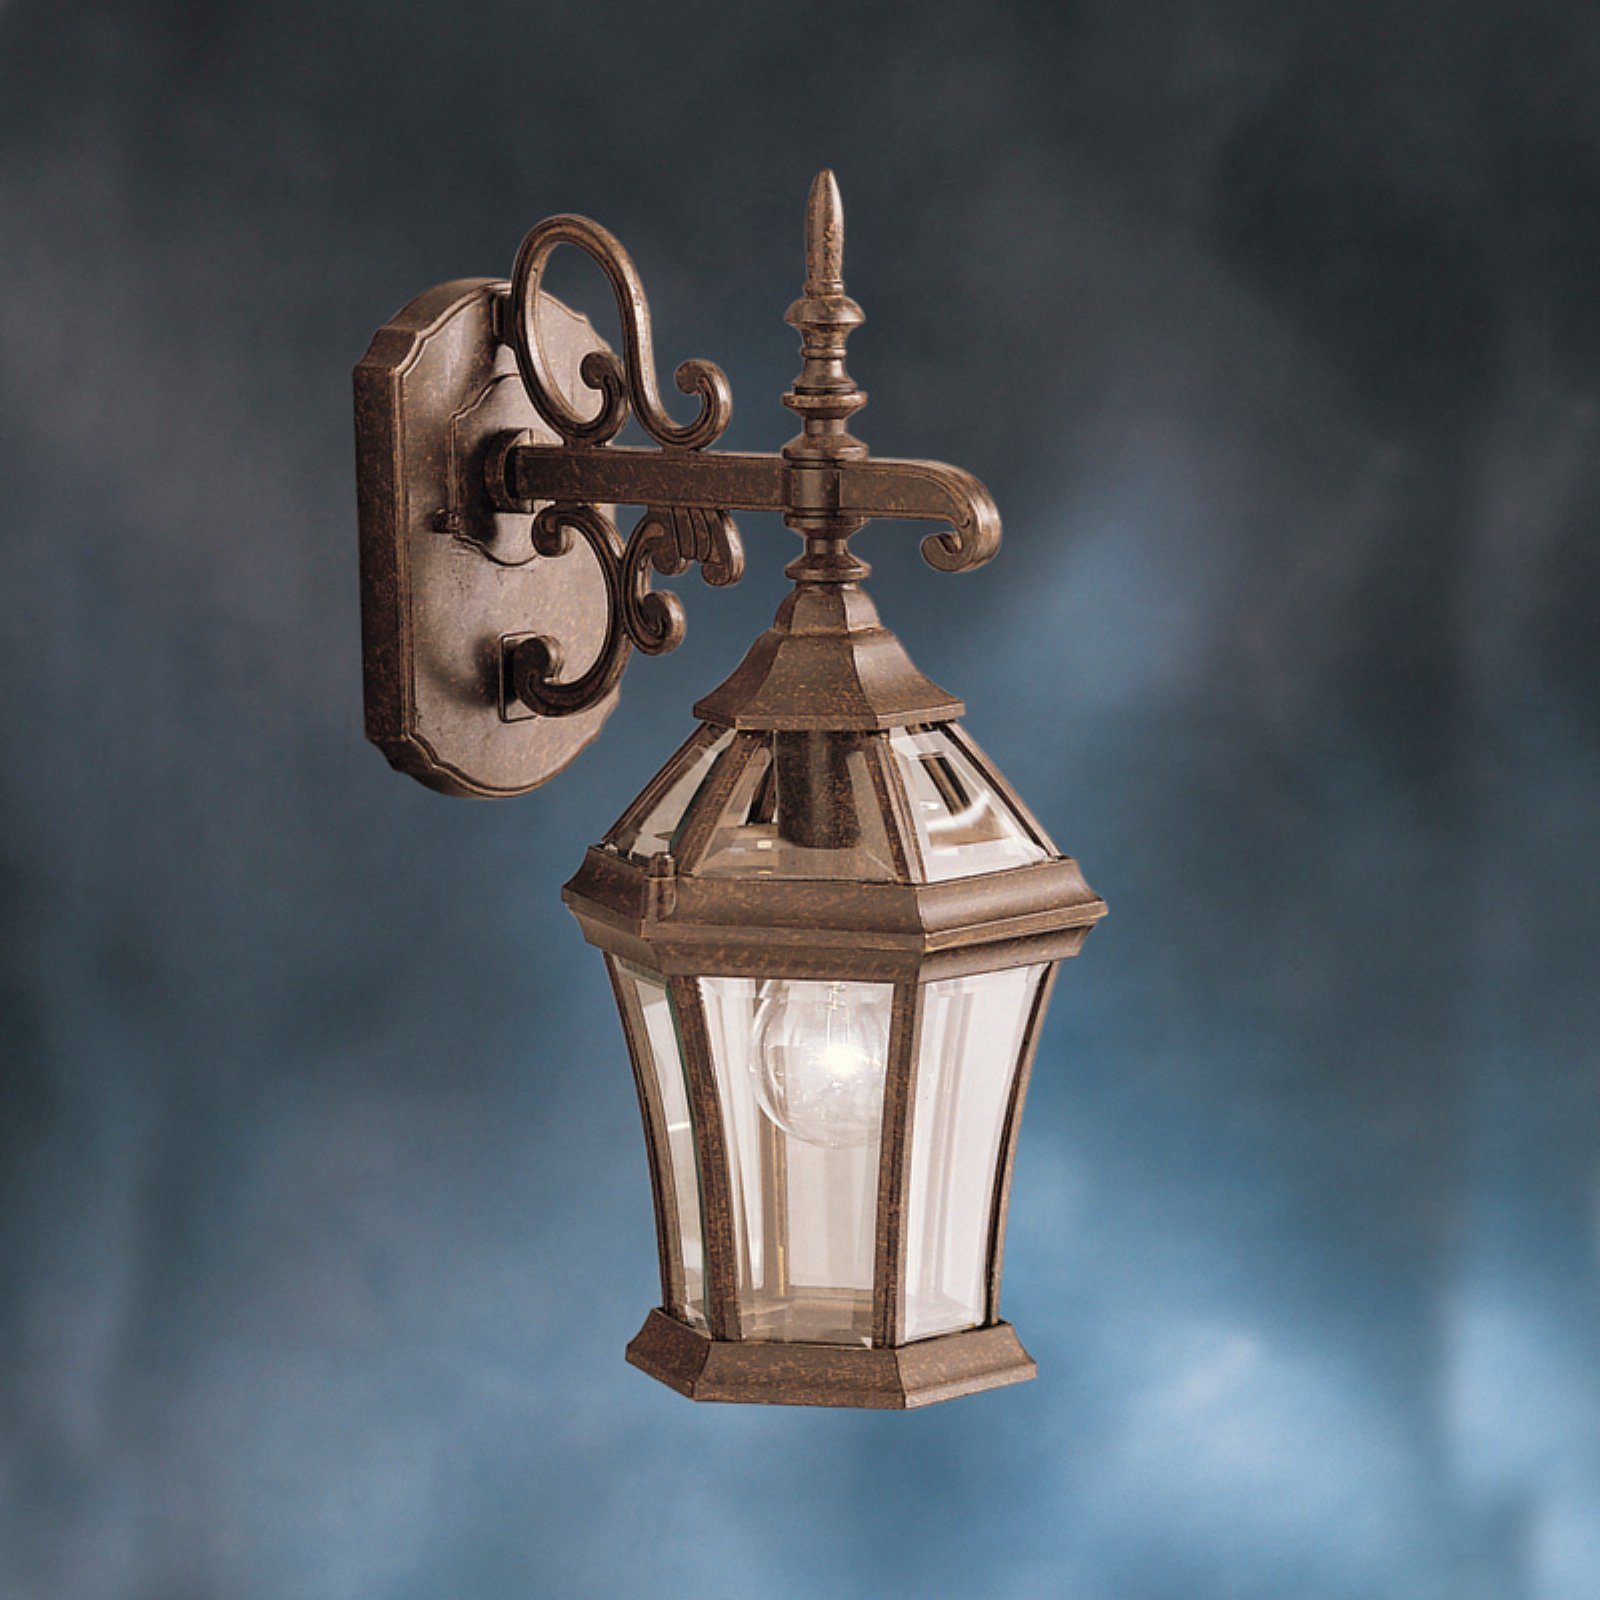 Kichler Townhouse 9789 Outdoor Wall Lantern - 7.25 in.